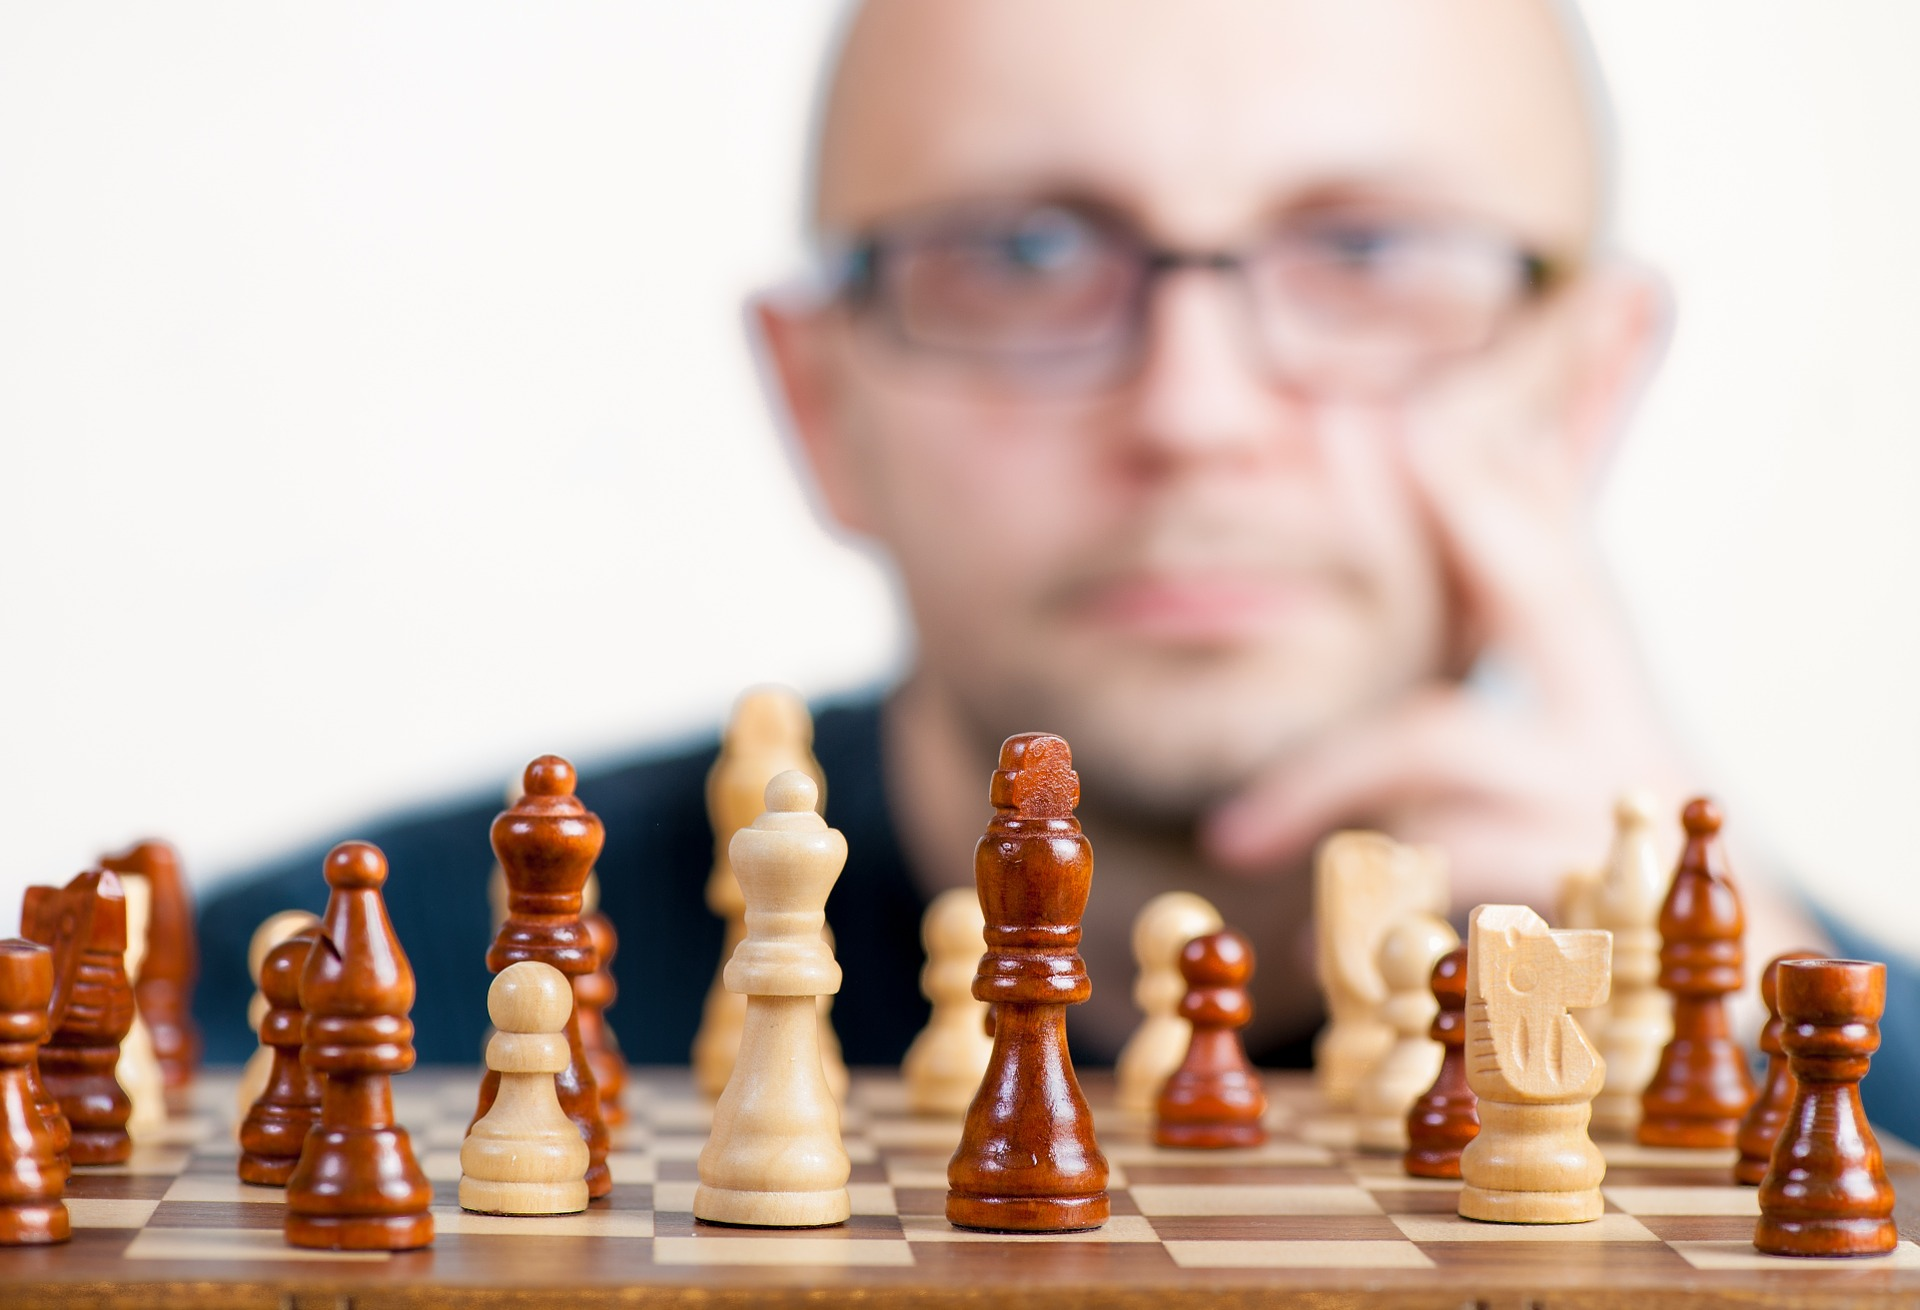 Pieces set up on a chess board, with a man appearing out of focus in the background with a thoughtful expression on his face